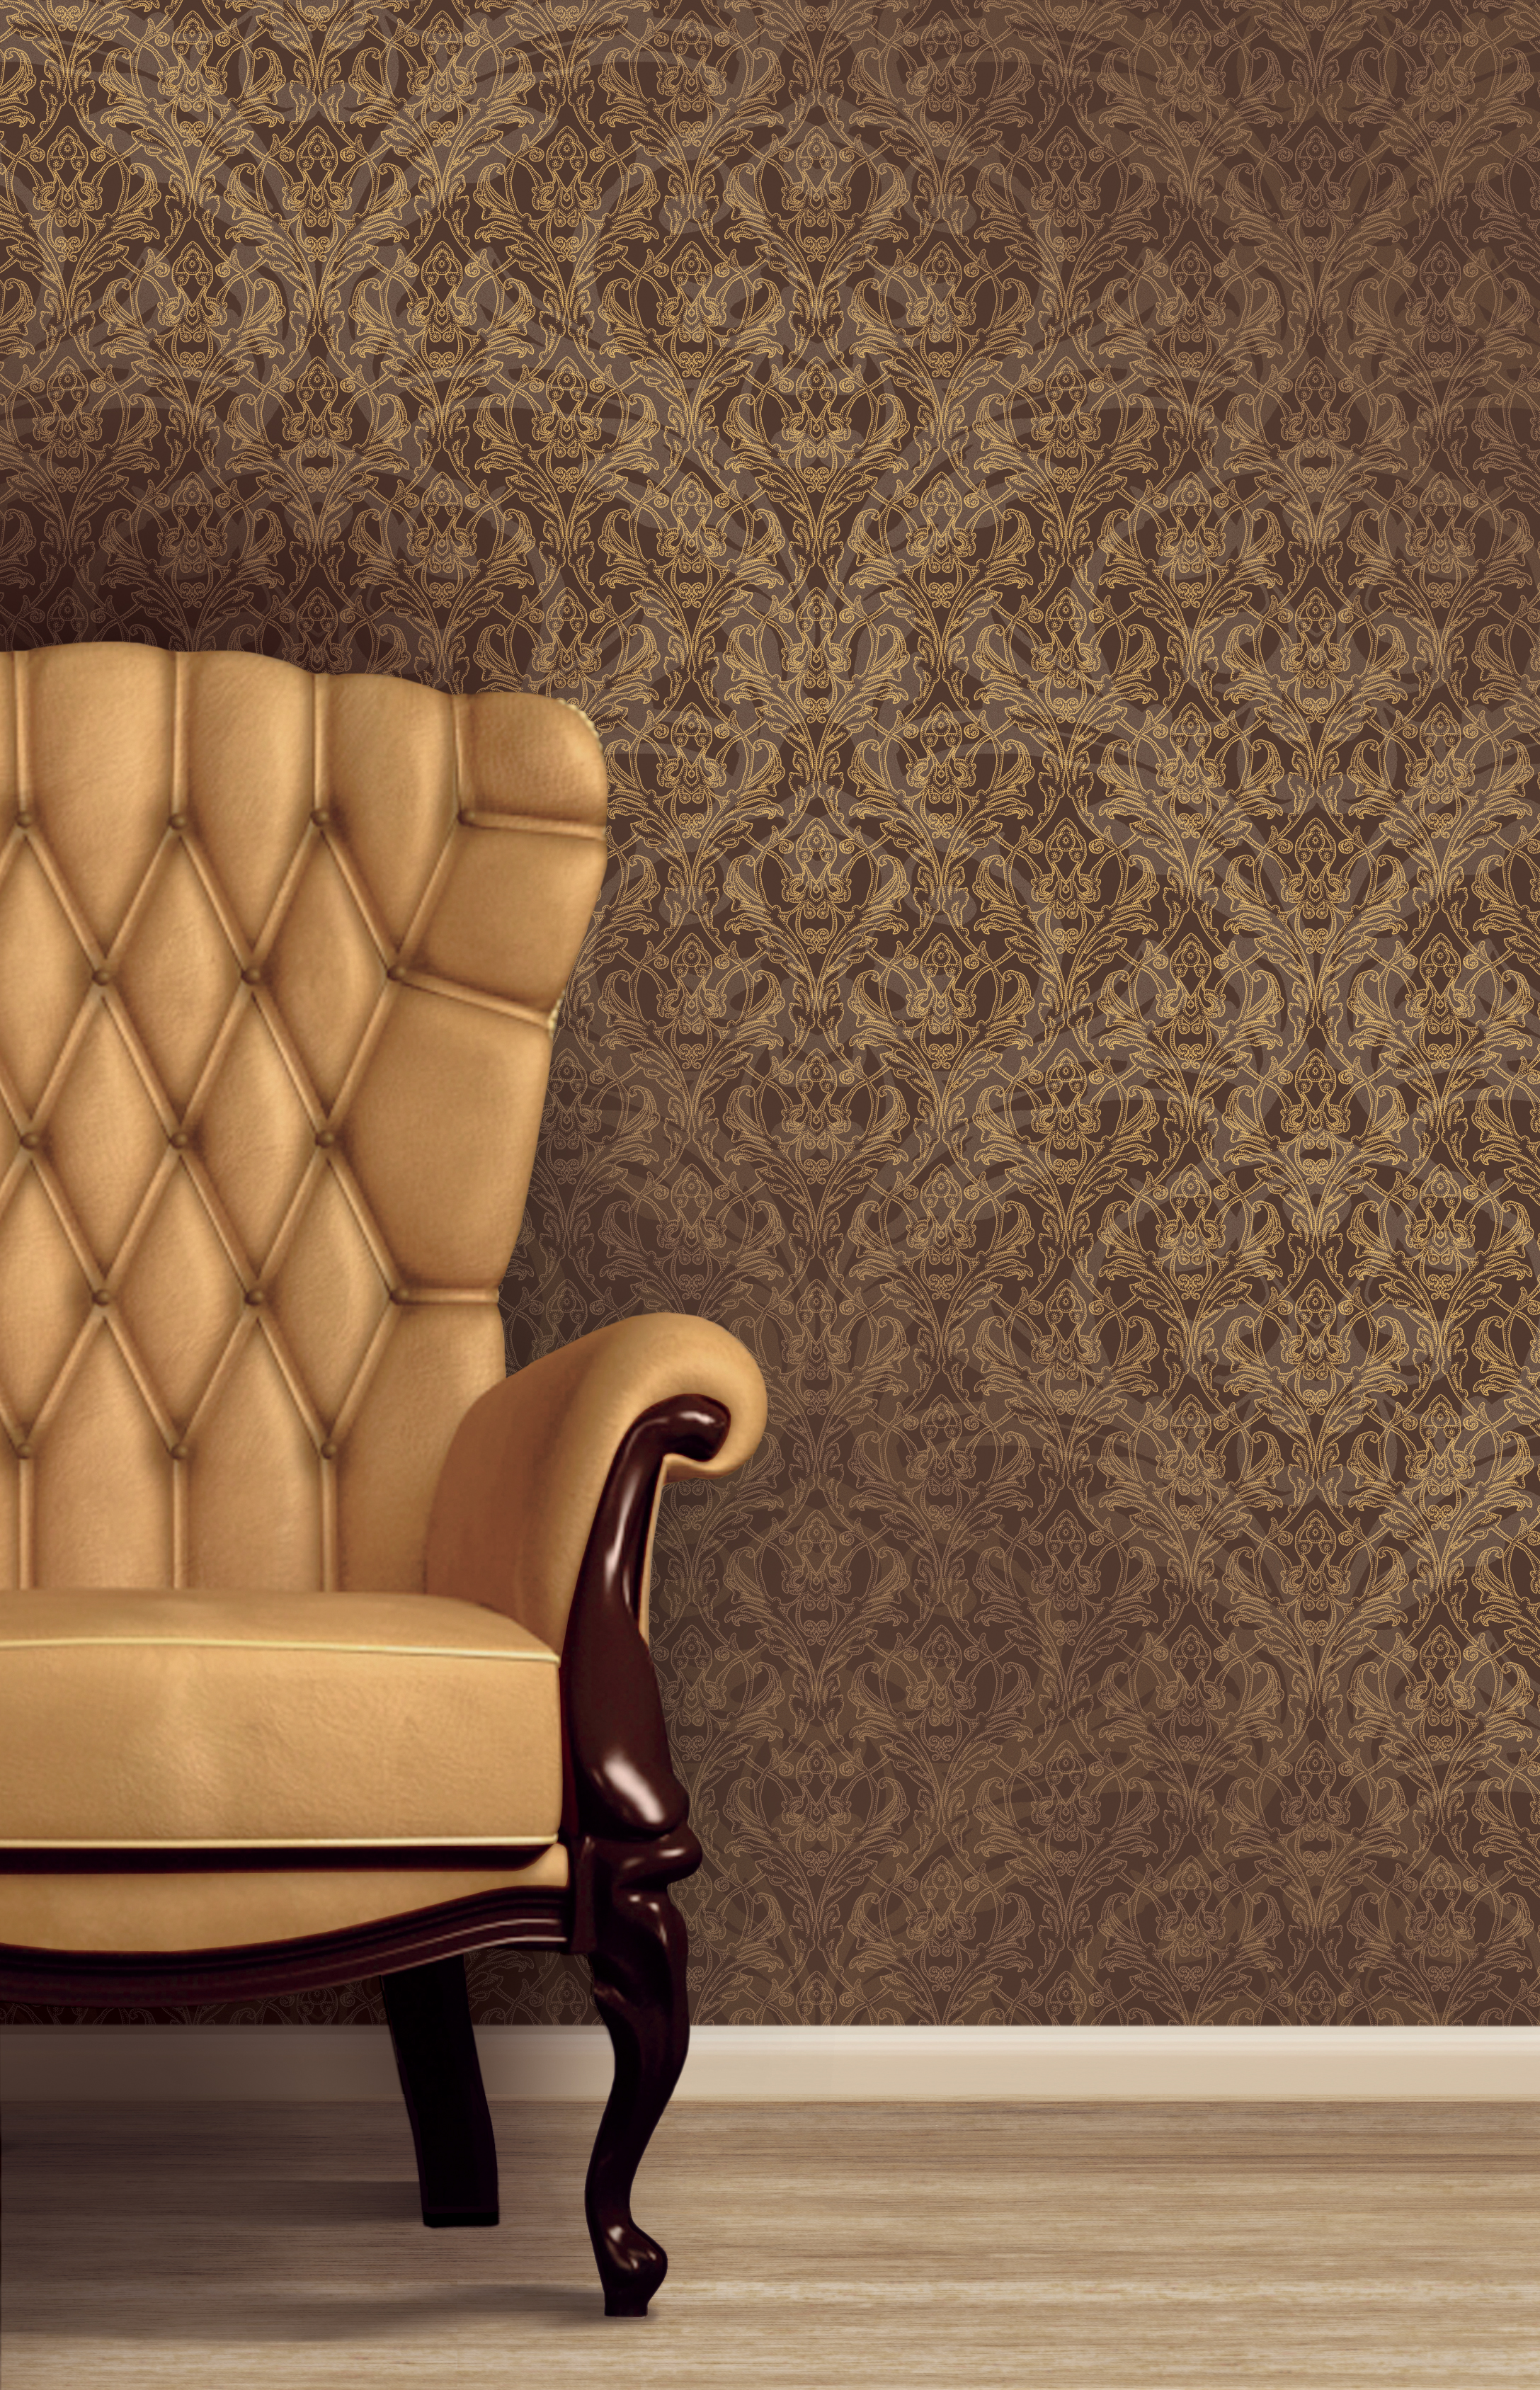 Wallpaper Covering